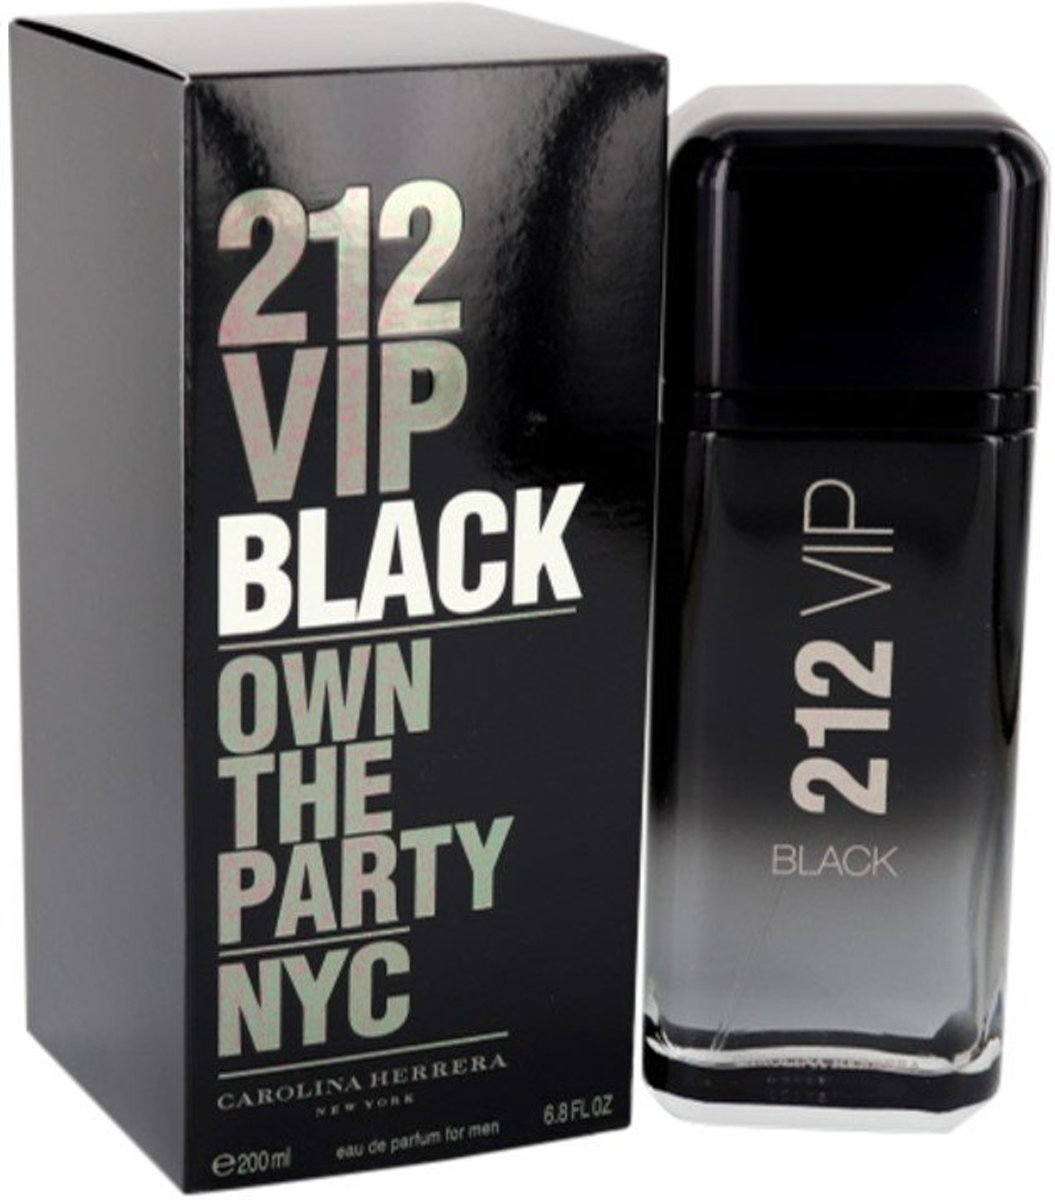 Carolina Herrera - Eau de toilette - VIP Black - 200 ml